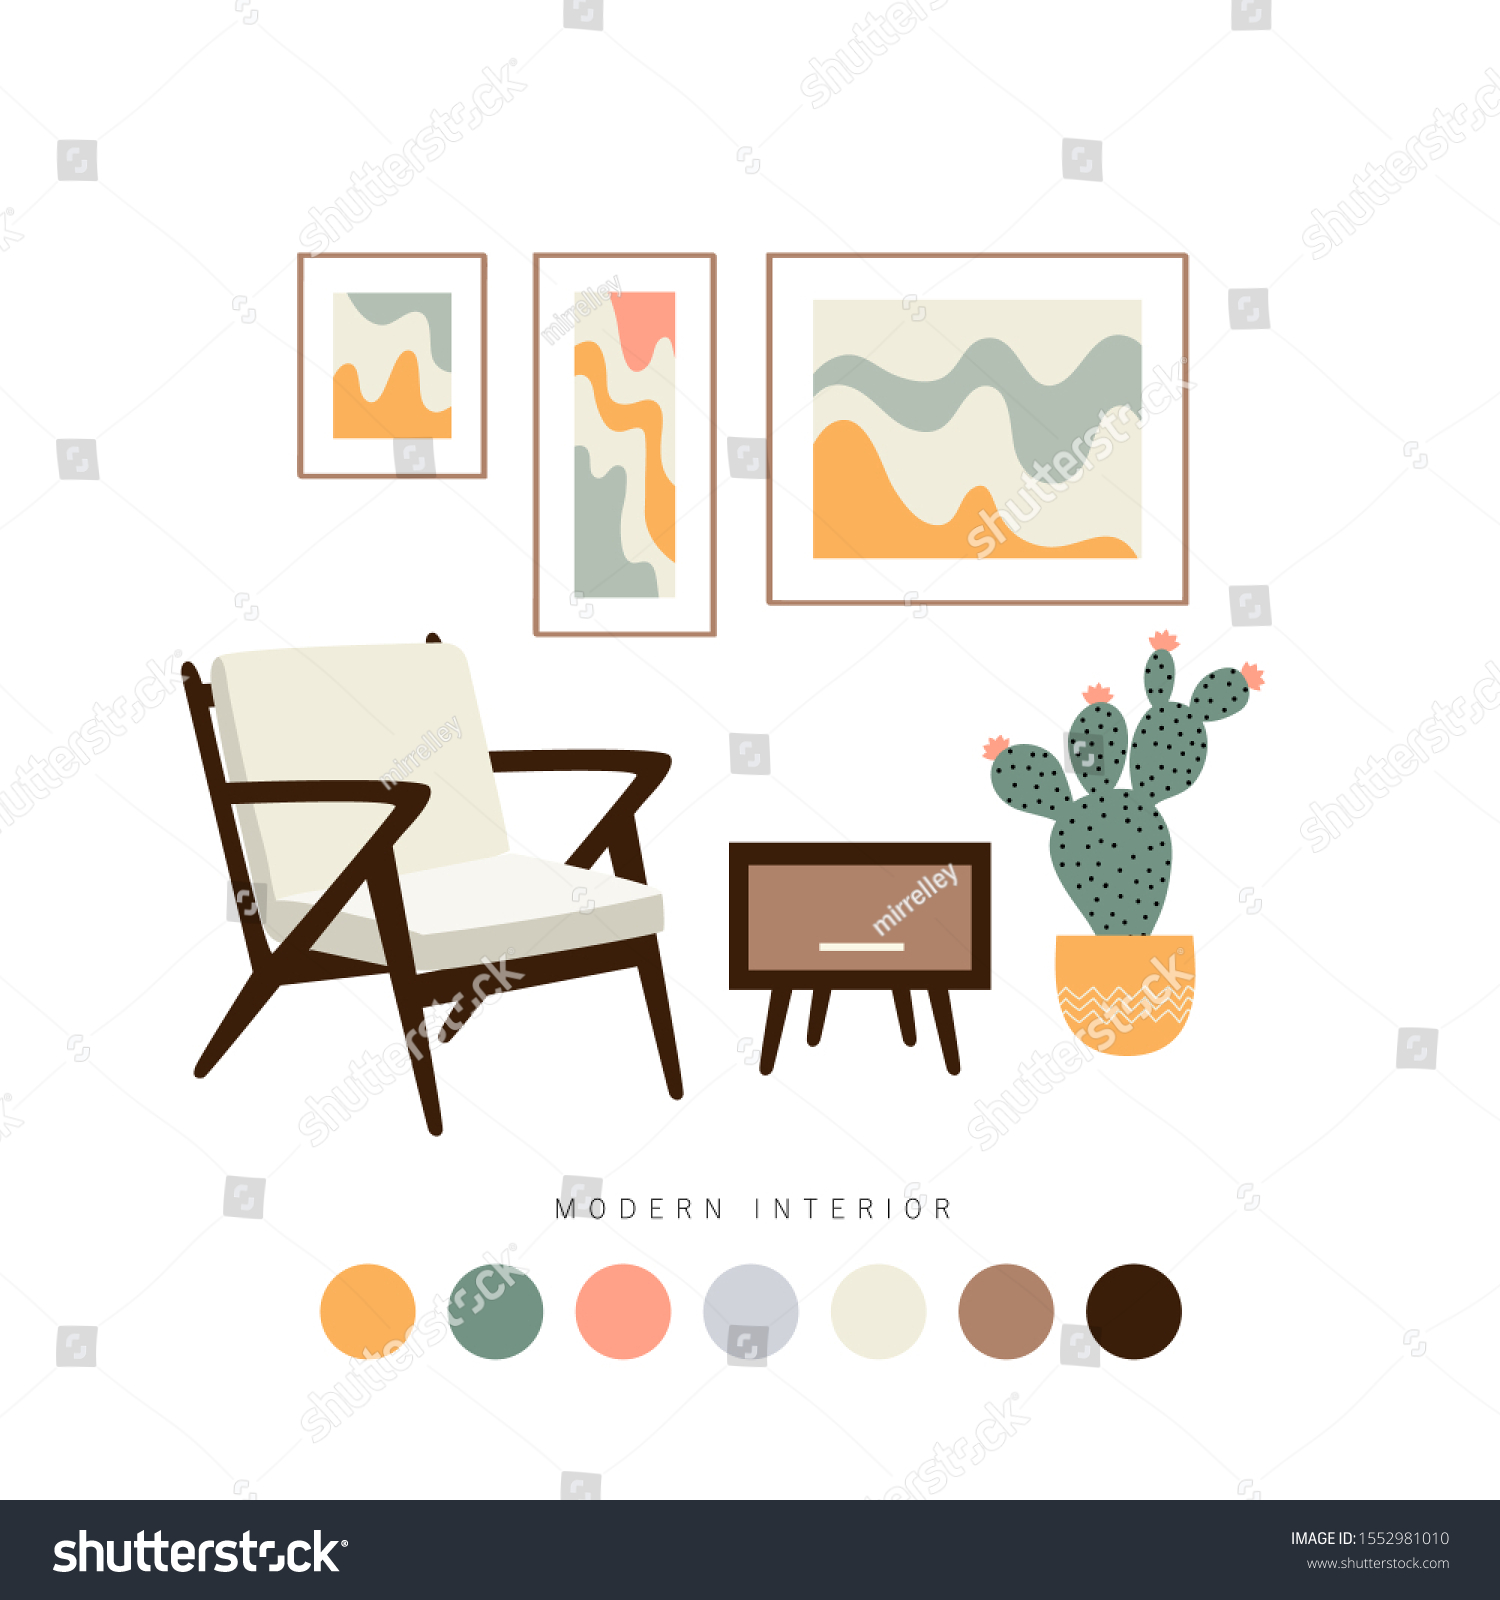 Set Furniture Interior Home Accessories Mid Stock Vector Royalty Free 1552981010